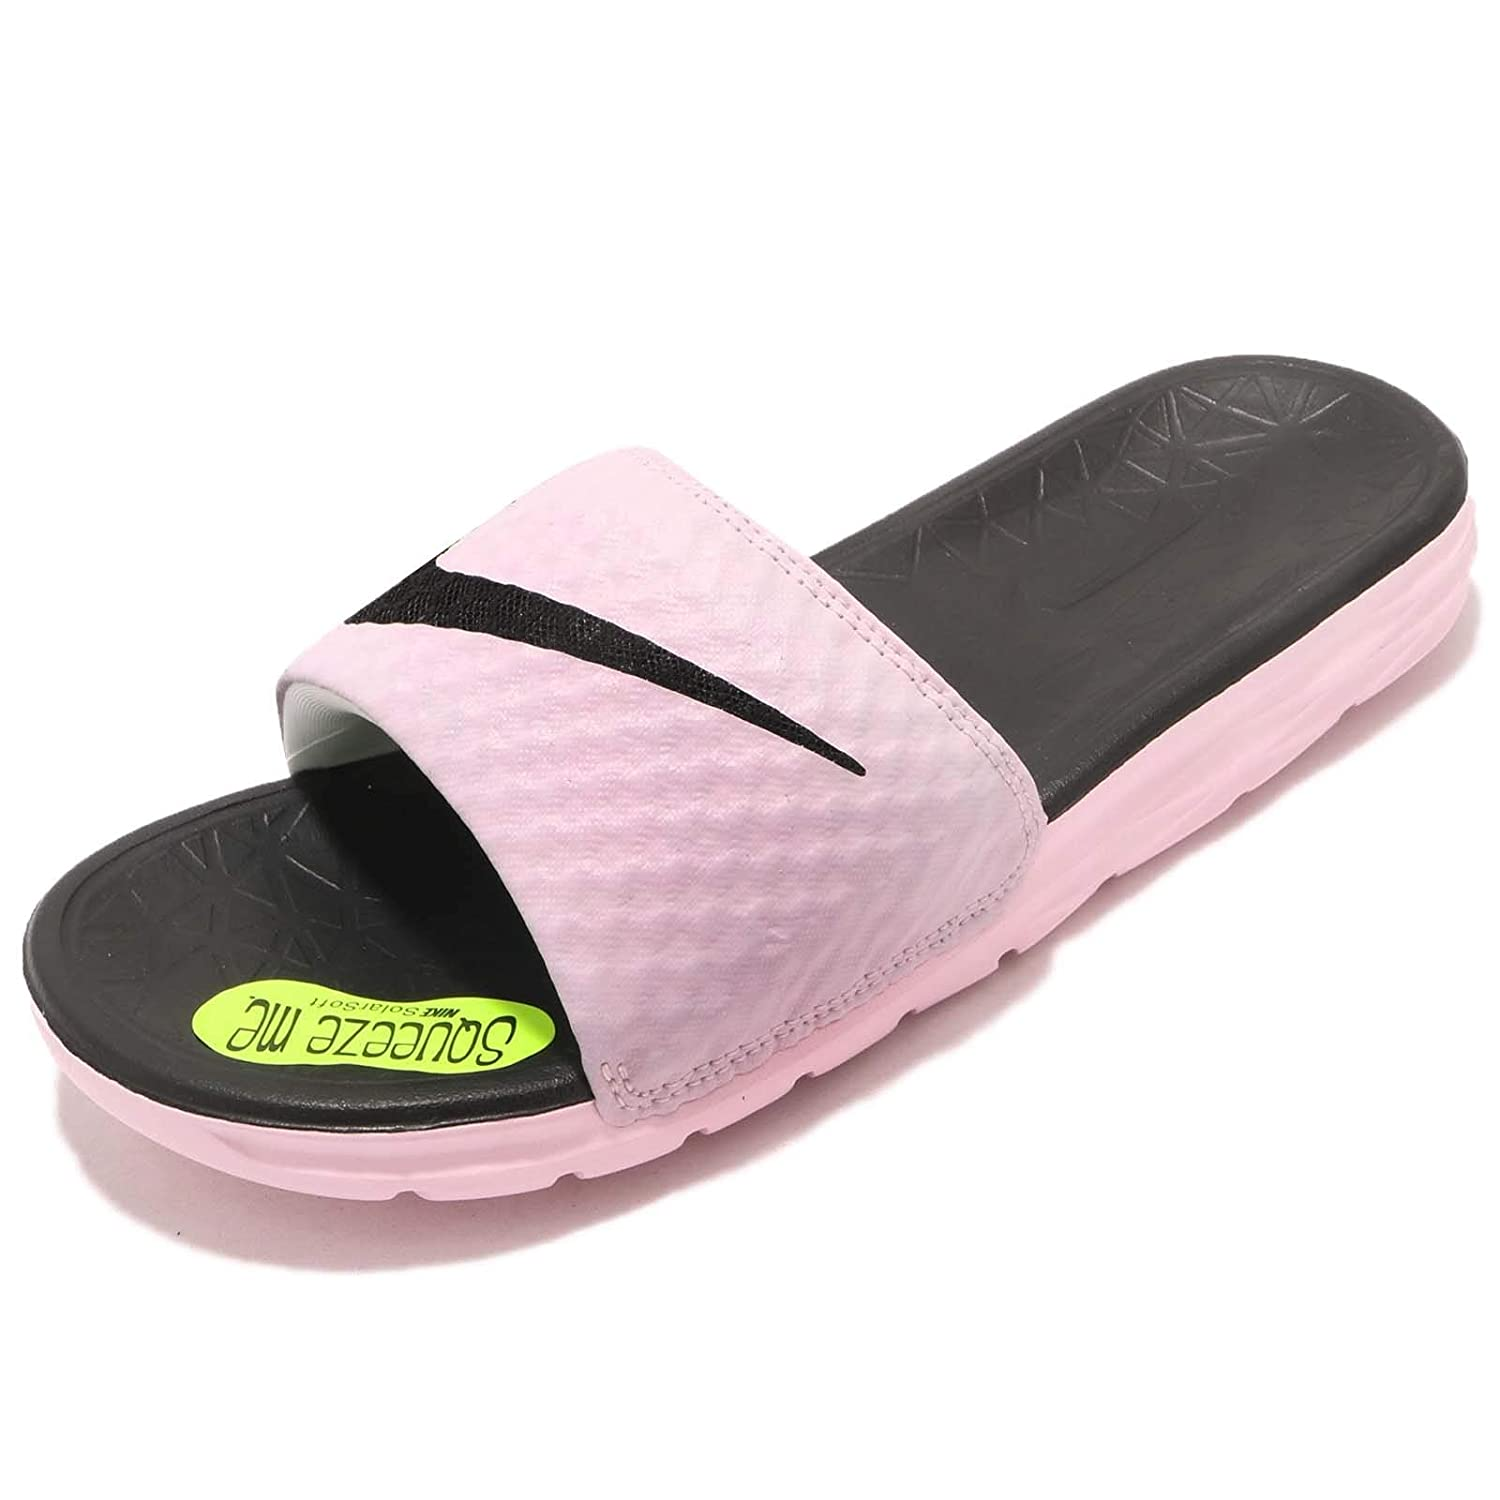 cheaper 9425d 16c93 Nike Women's Benassi Solarsoft Slide Sandal